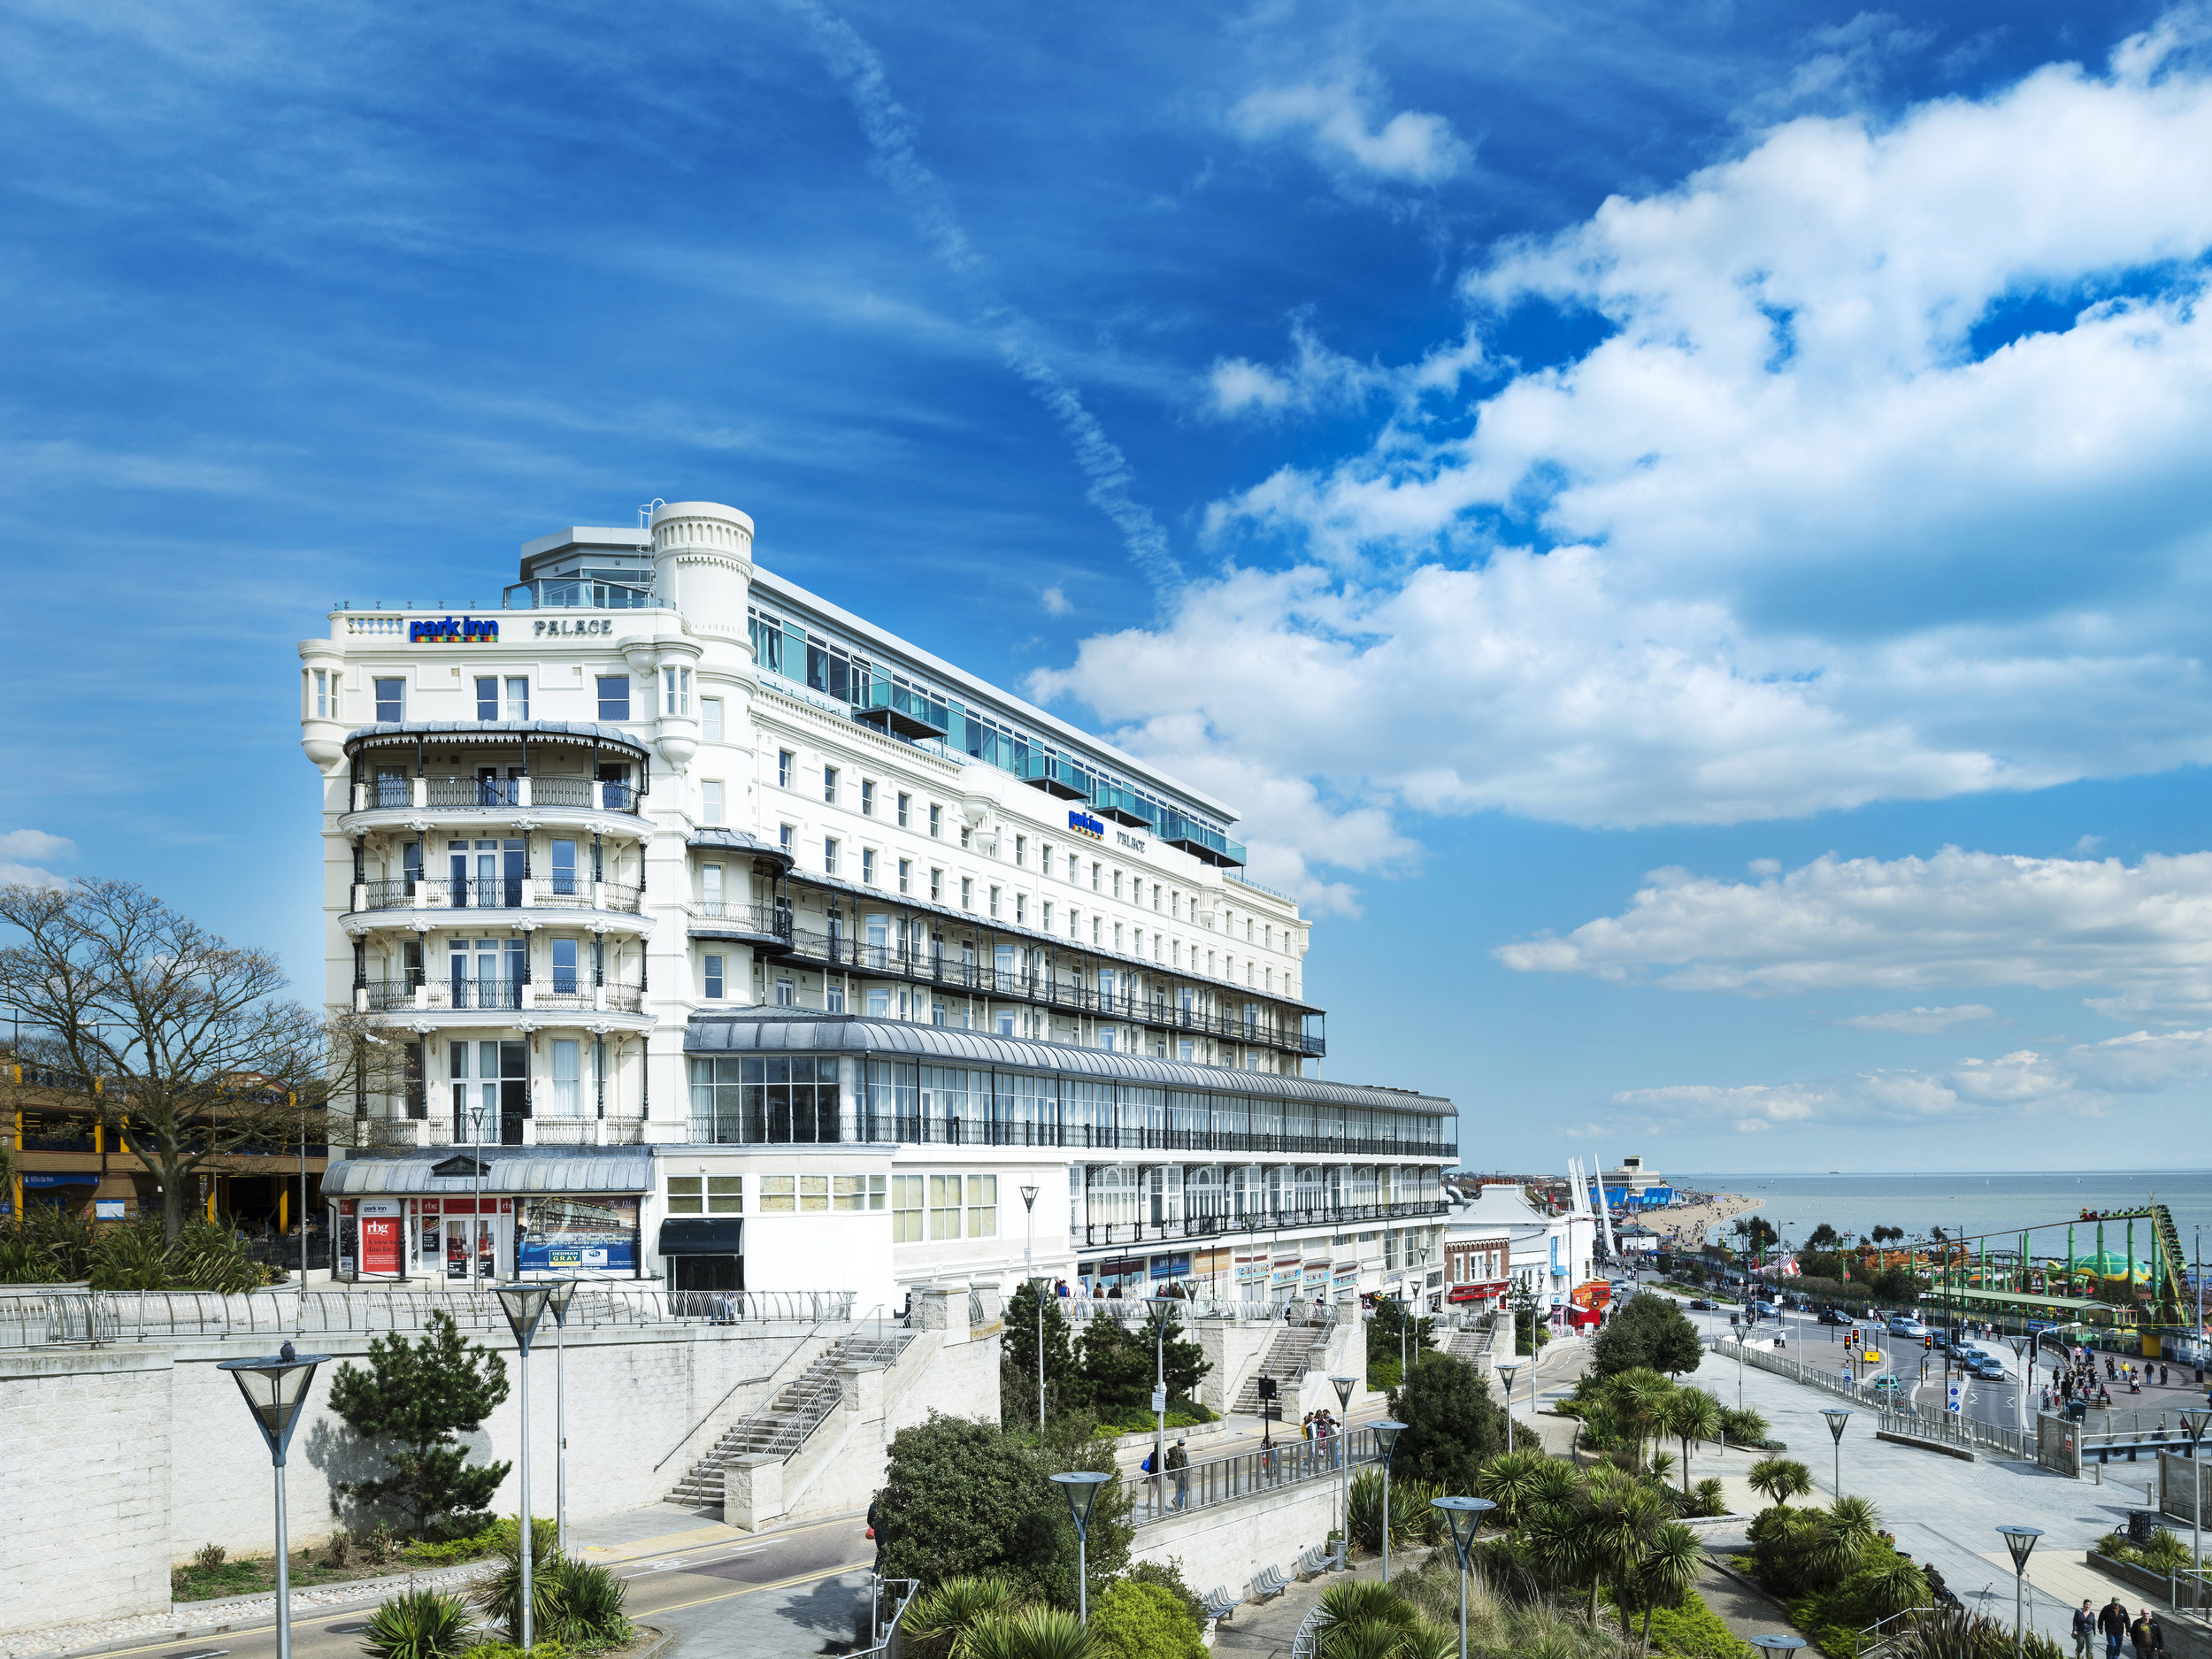 Radisson Park Inn Hotel in Southend